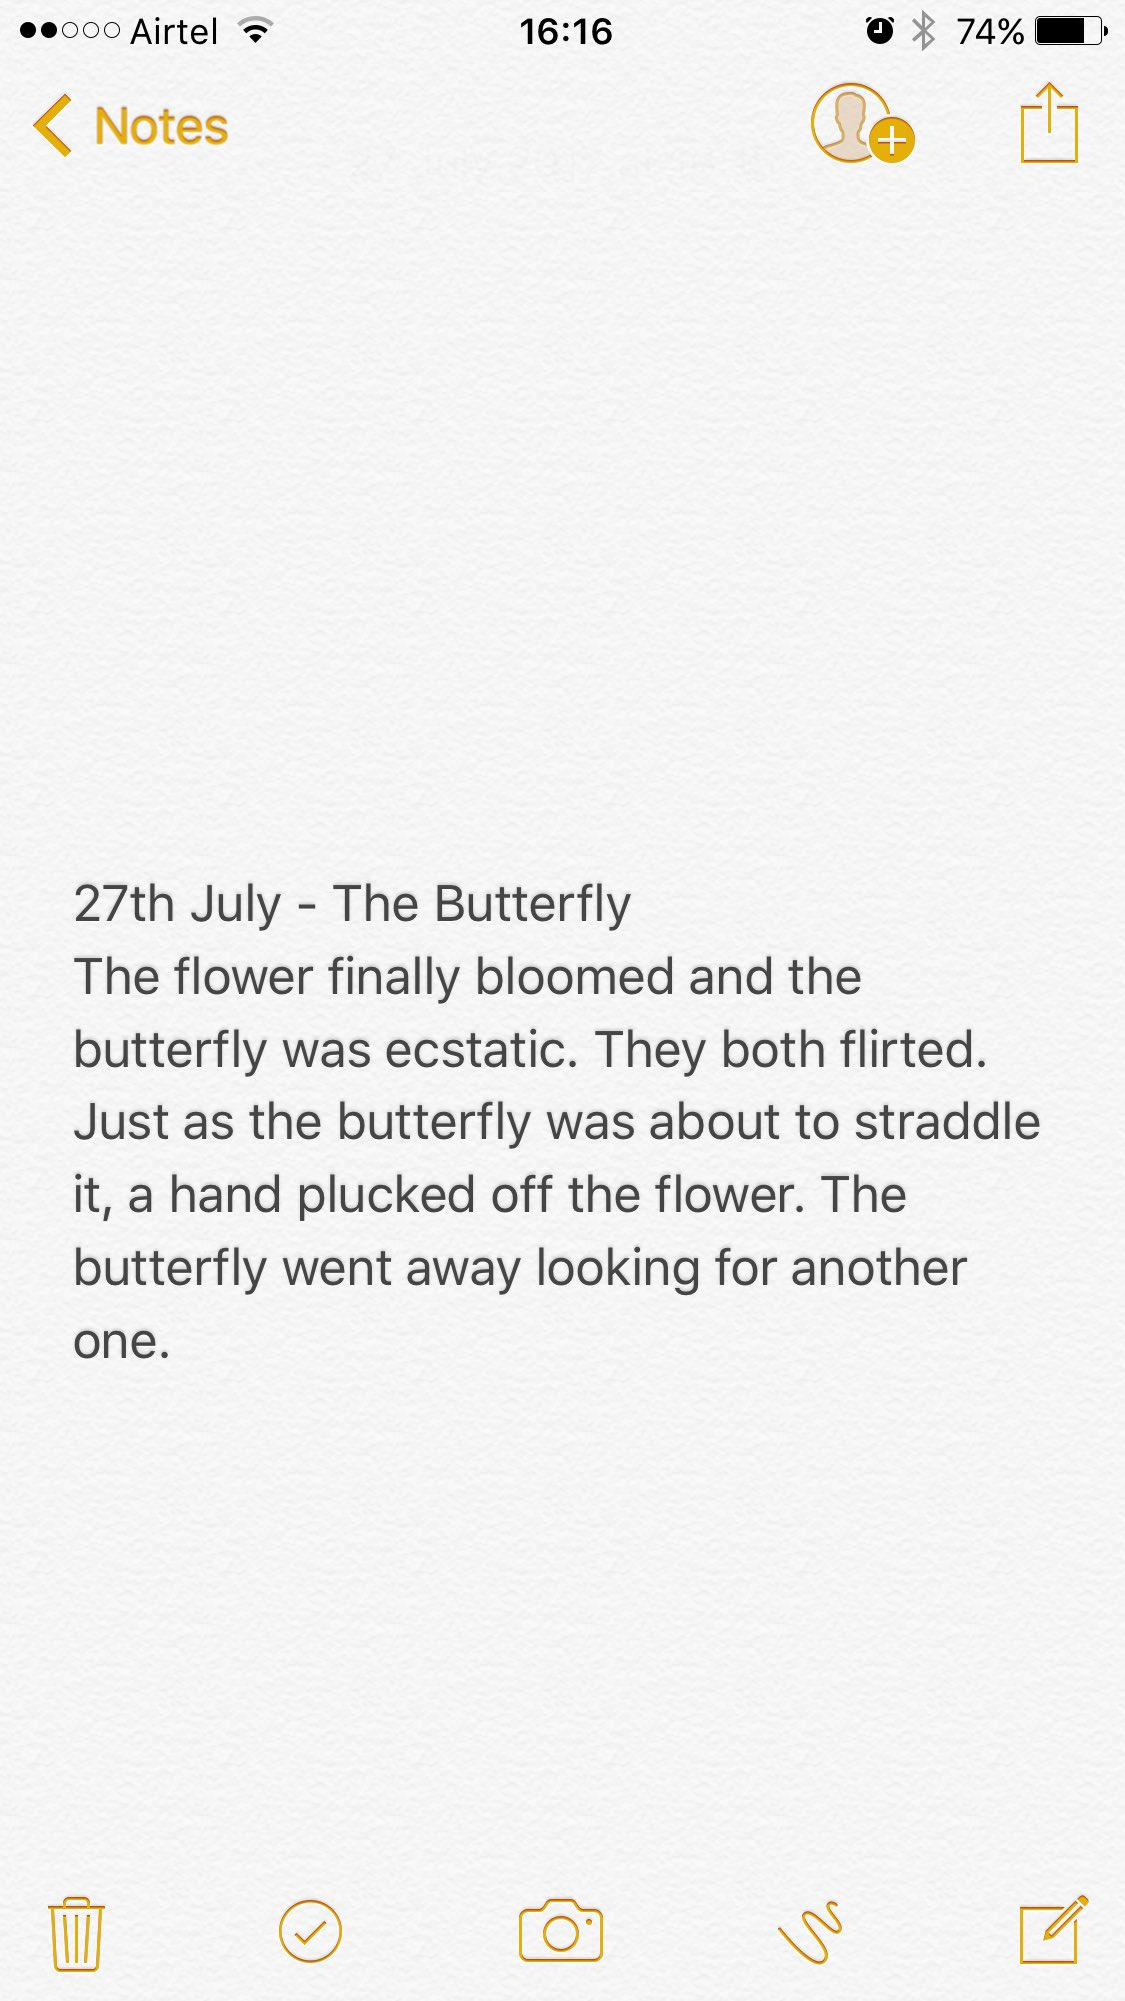 #Tiniature #tinystories #microstories #tinytales #amwriting #BeingAuthor https://t.co/Yb8JGtty2j